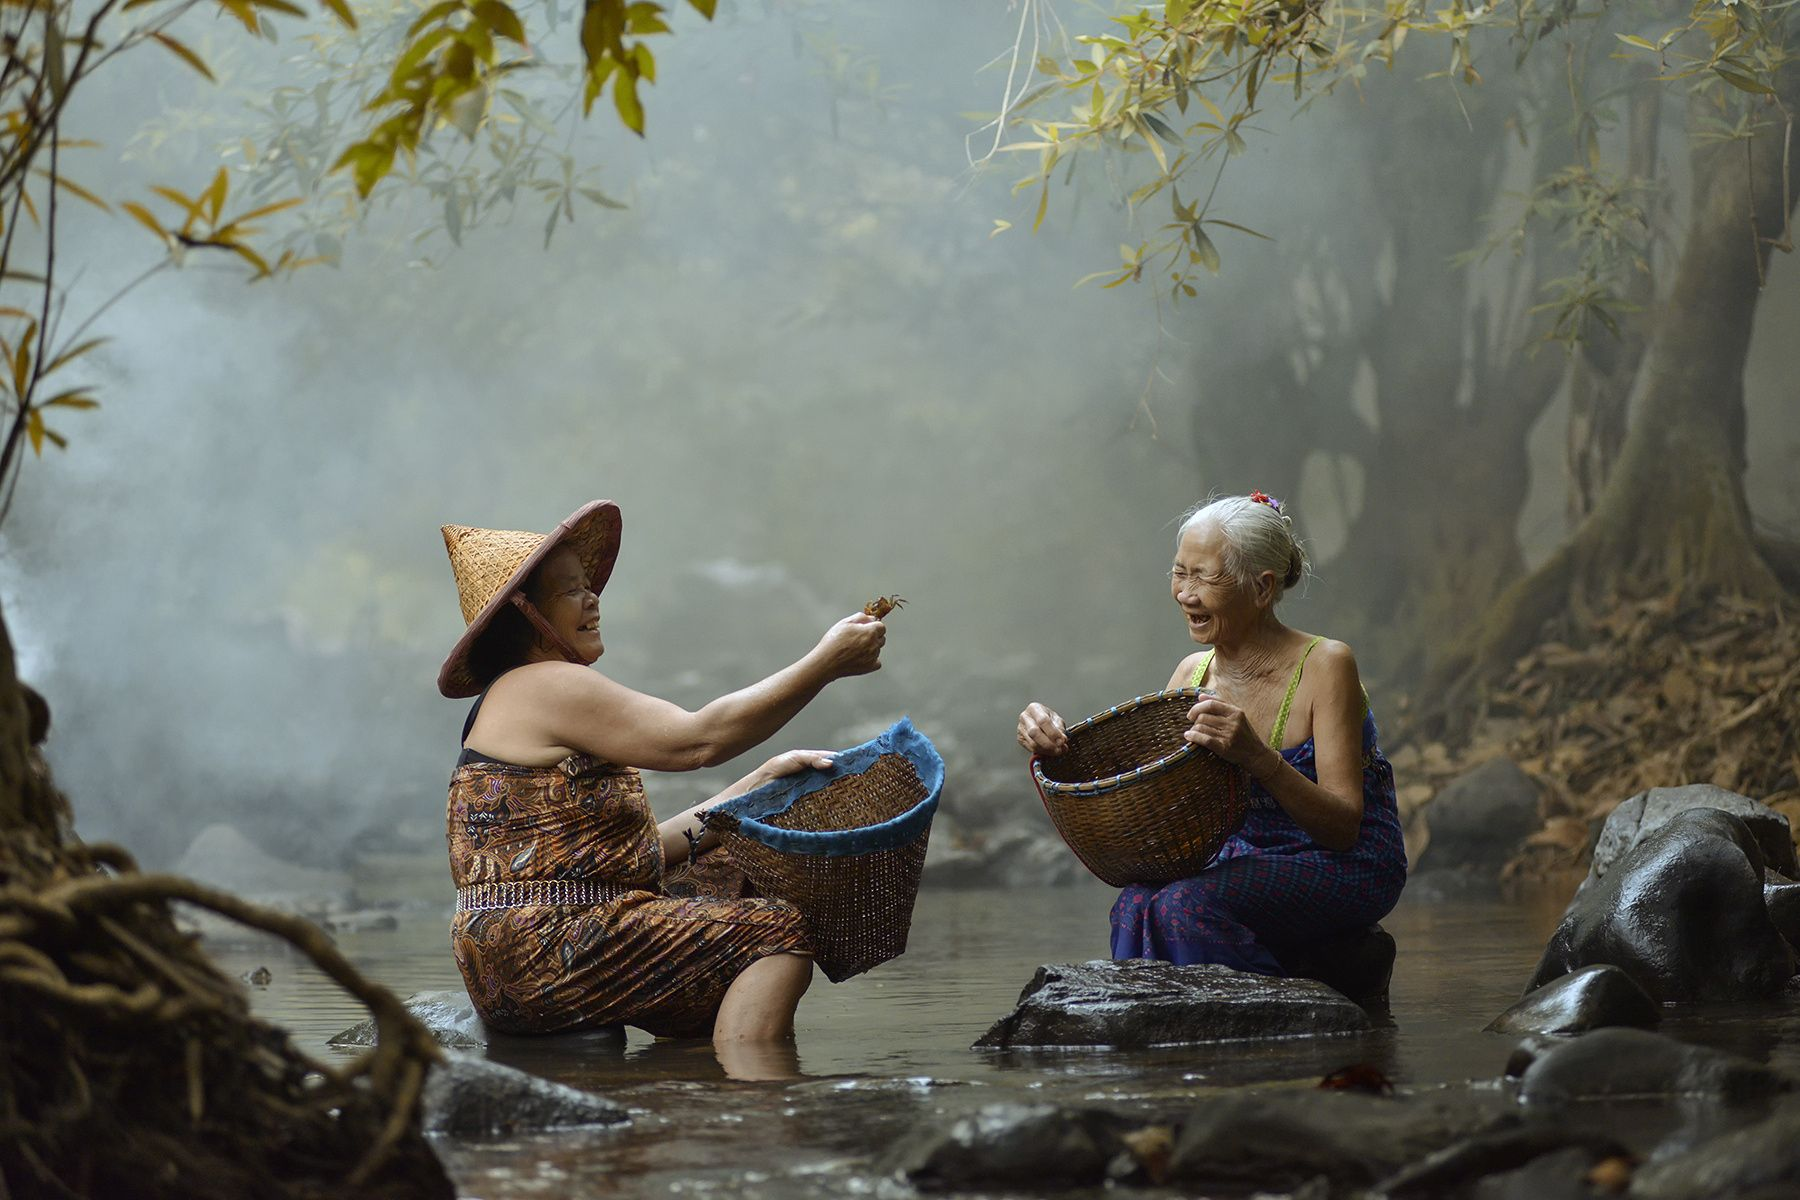 Photograph Long life by Saravut Whanset on 500px